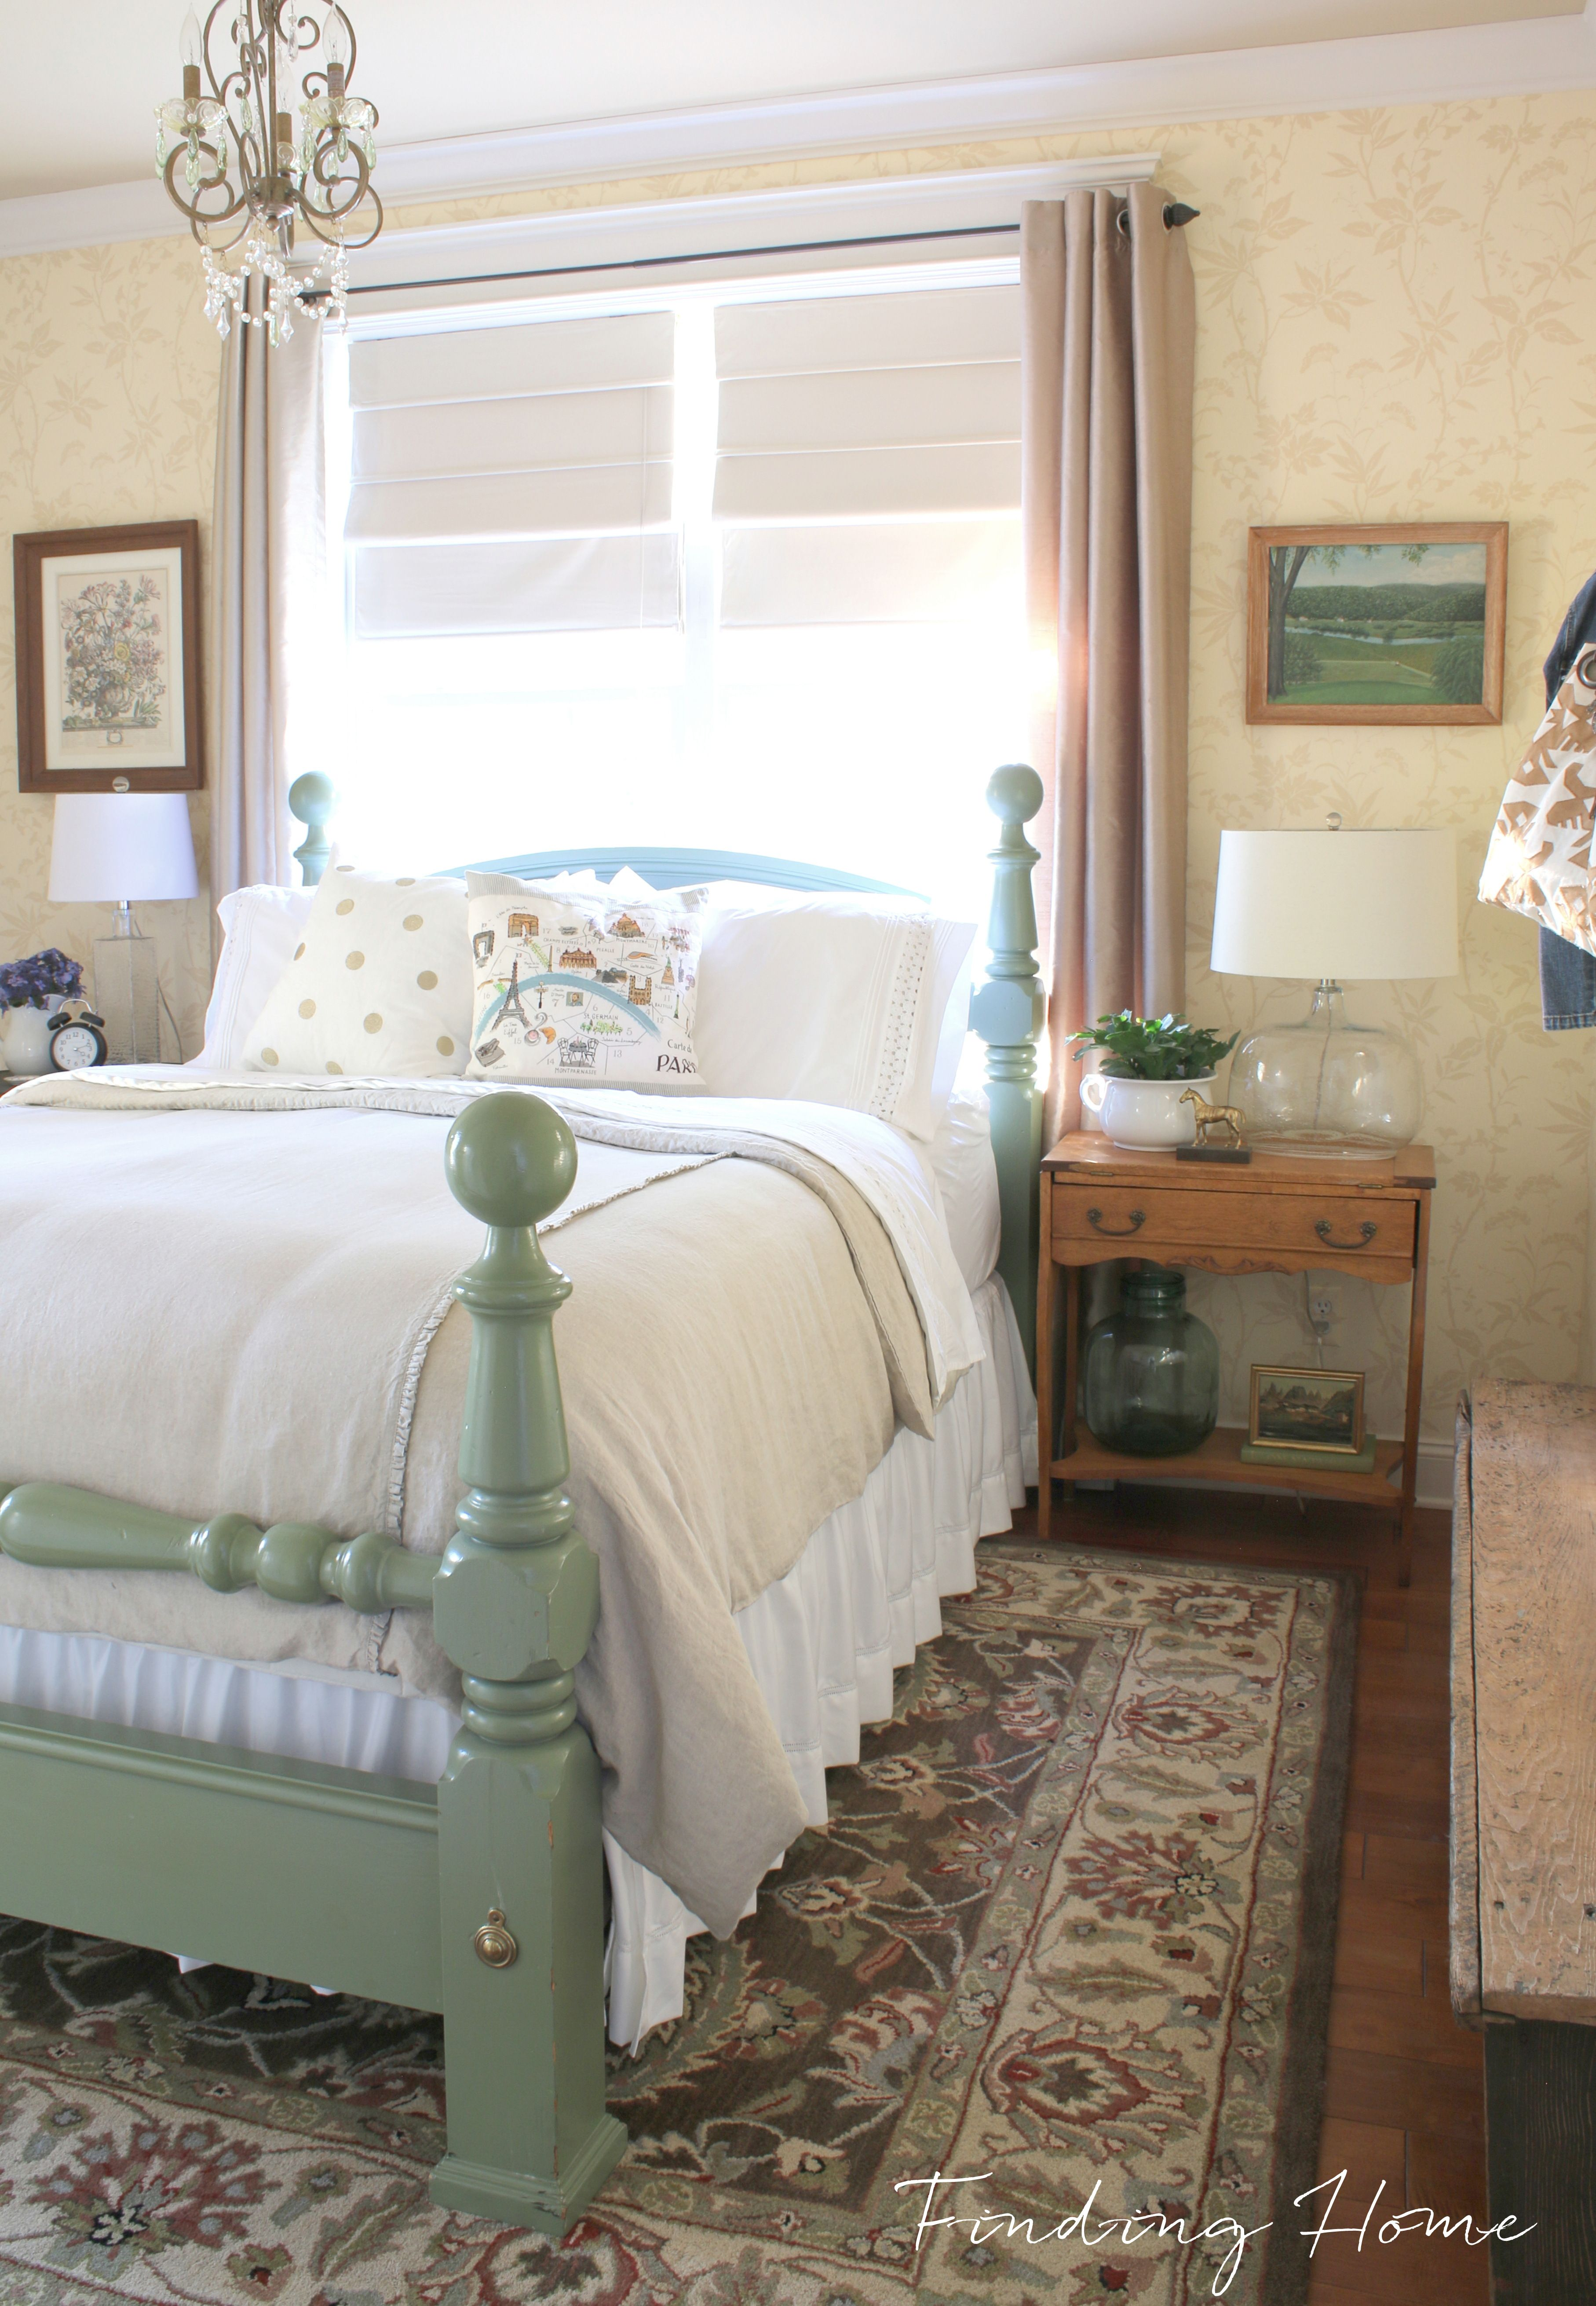 Guest House Room Design: Guest Bedroom Decorating - A Welcoming Makeover